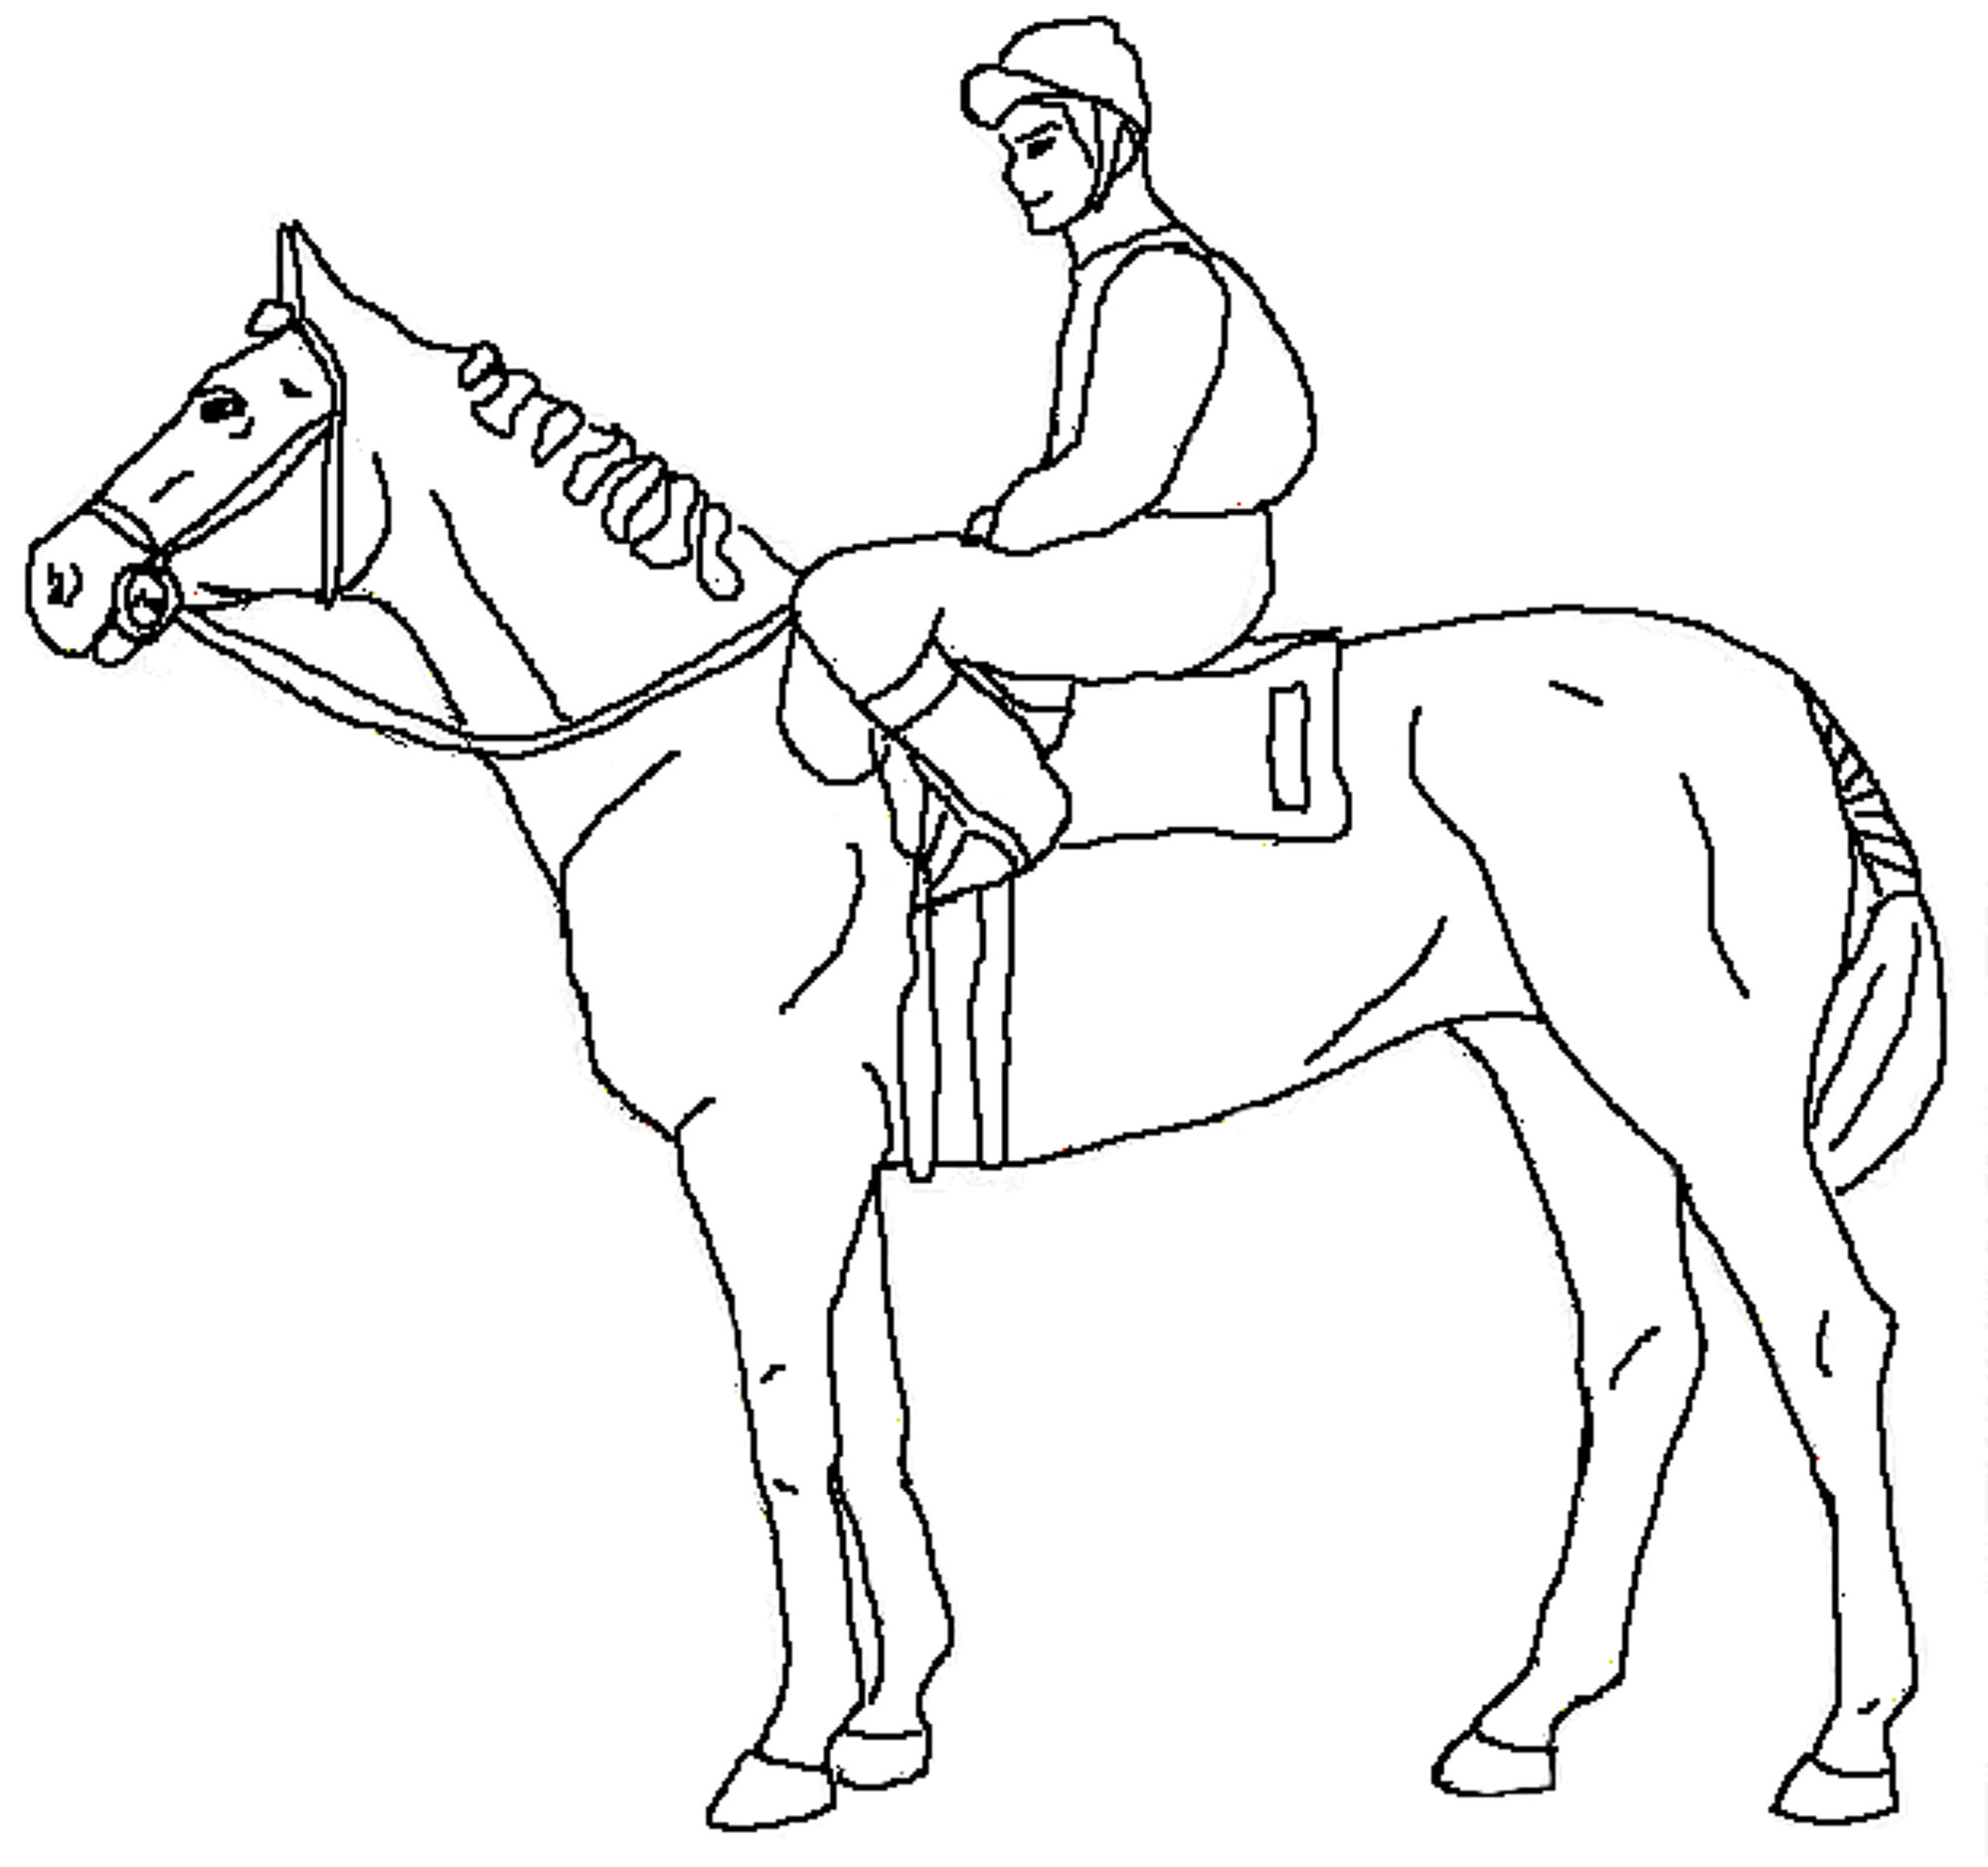 horse coloring pages online top 55 free printable horse coloring pages online horse pages coloring online horse